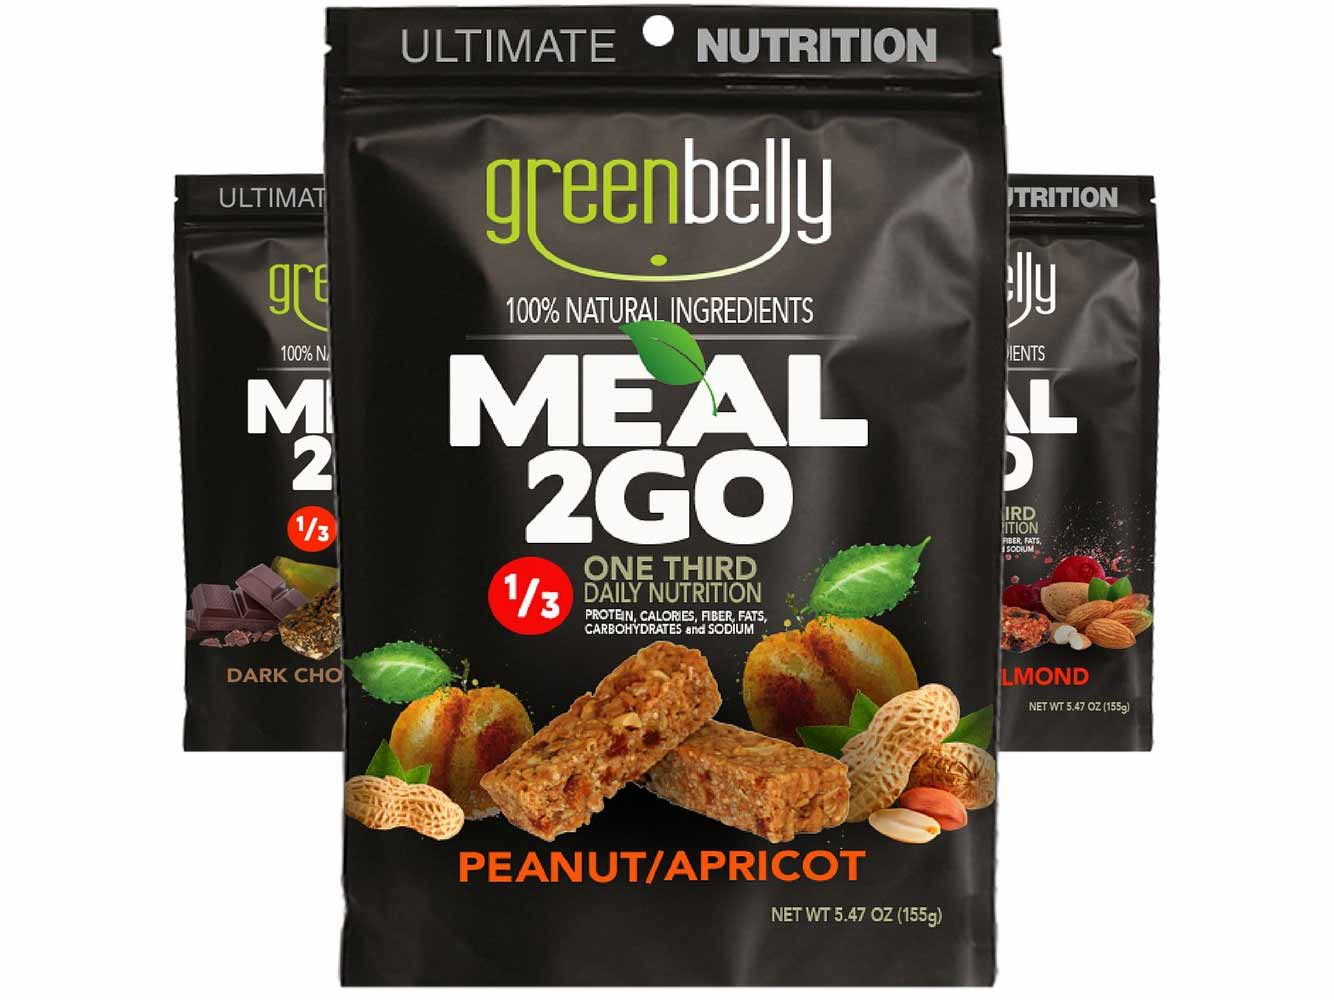 Greenbelly stoveless backpacking meals